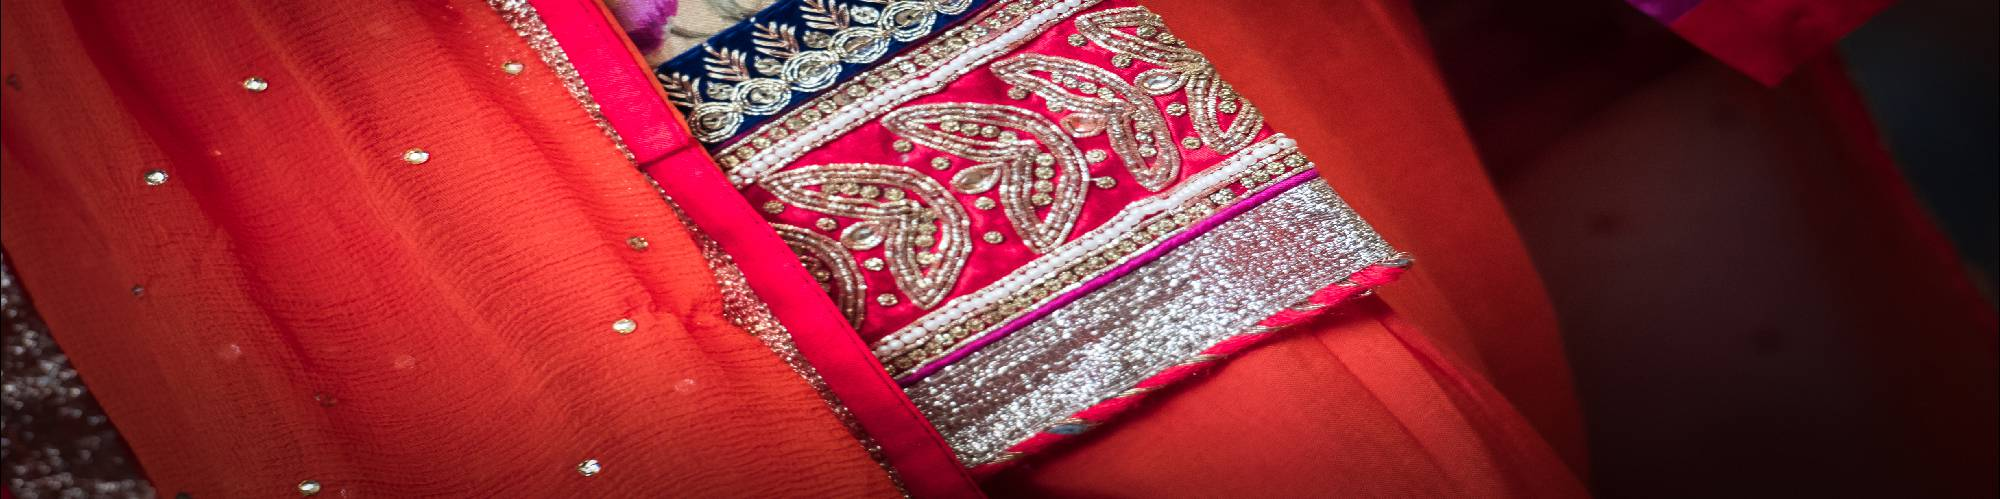 Jo Newbury Photography detail of Sikh wedding dress